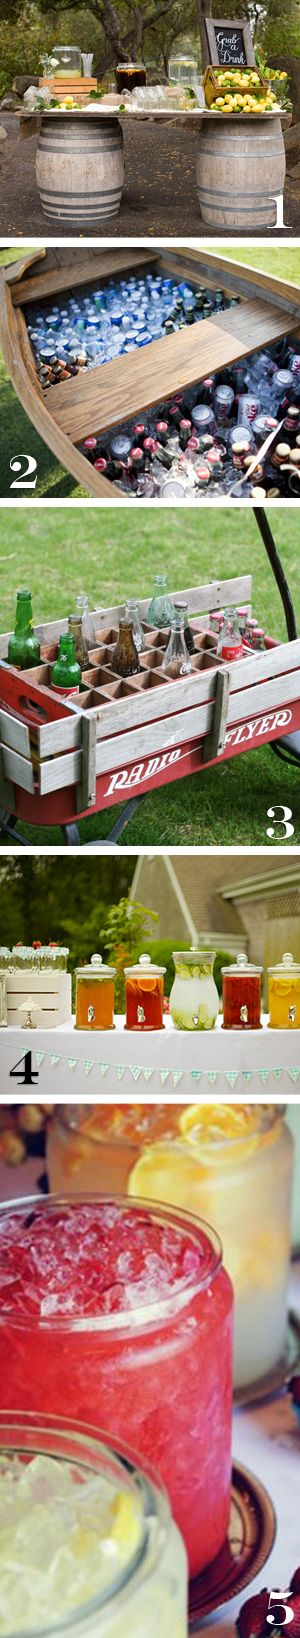 awesome ideas for outdoor drink displays for weddings, bbq, barbeque, picnics and parties.--ideas